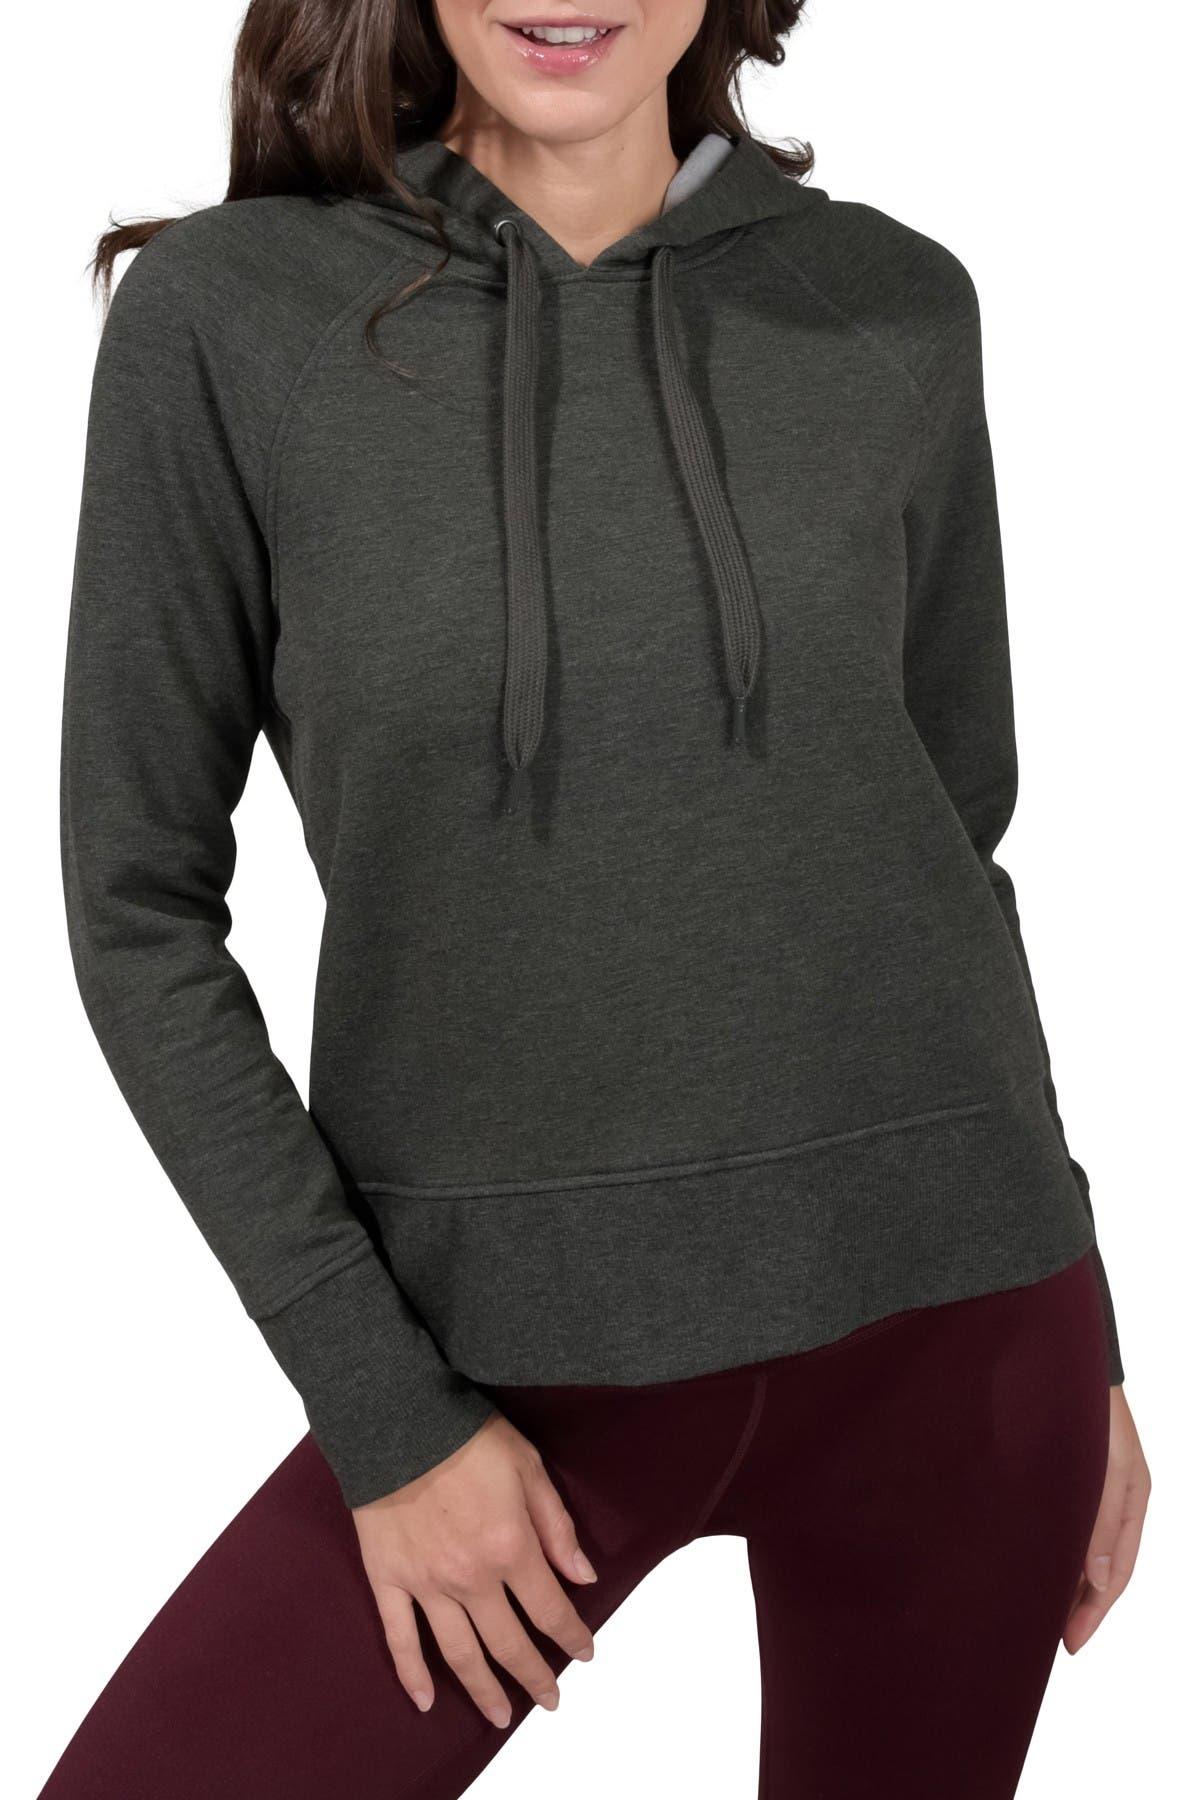 Image of 90 Degree By Reflex Butter Hoodie Long Sleeve Top